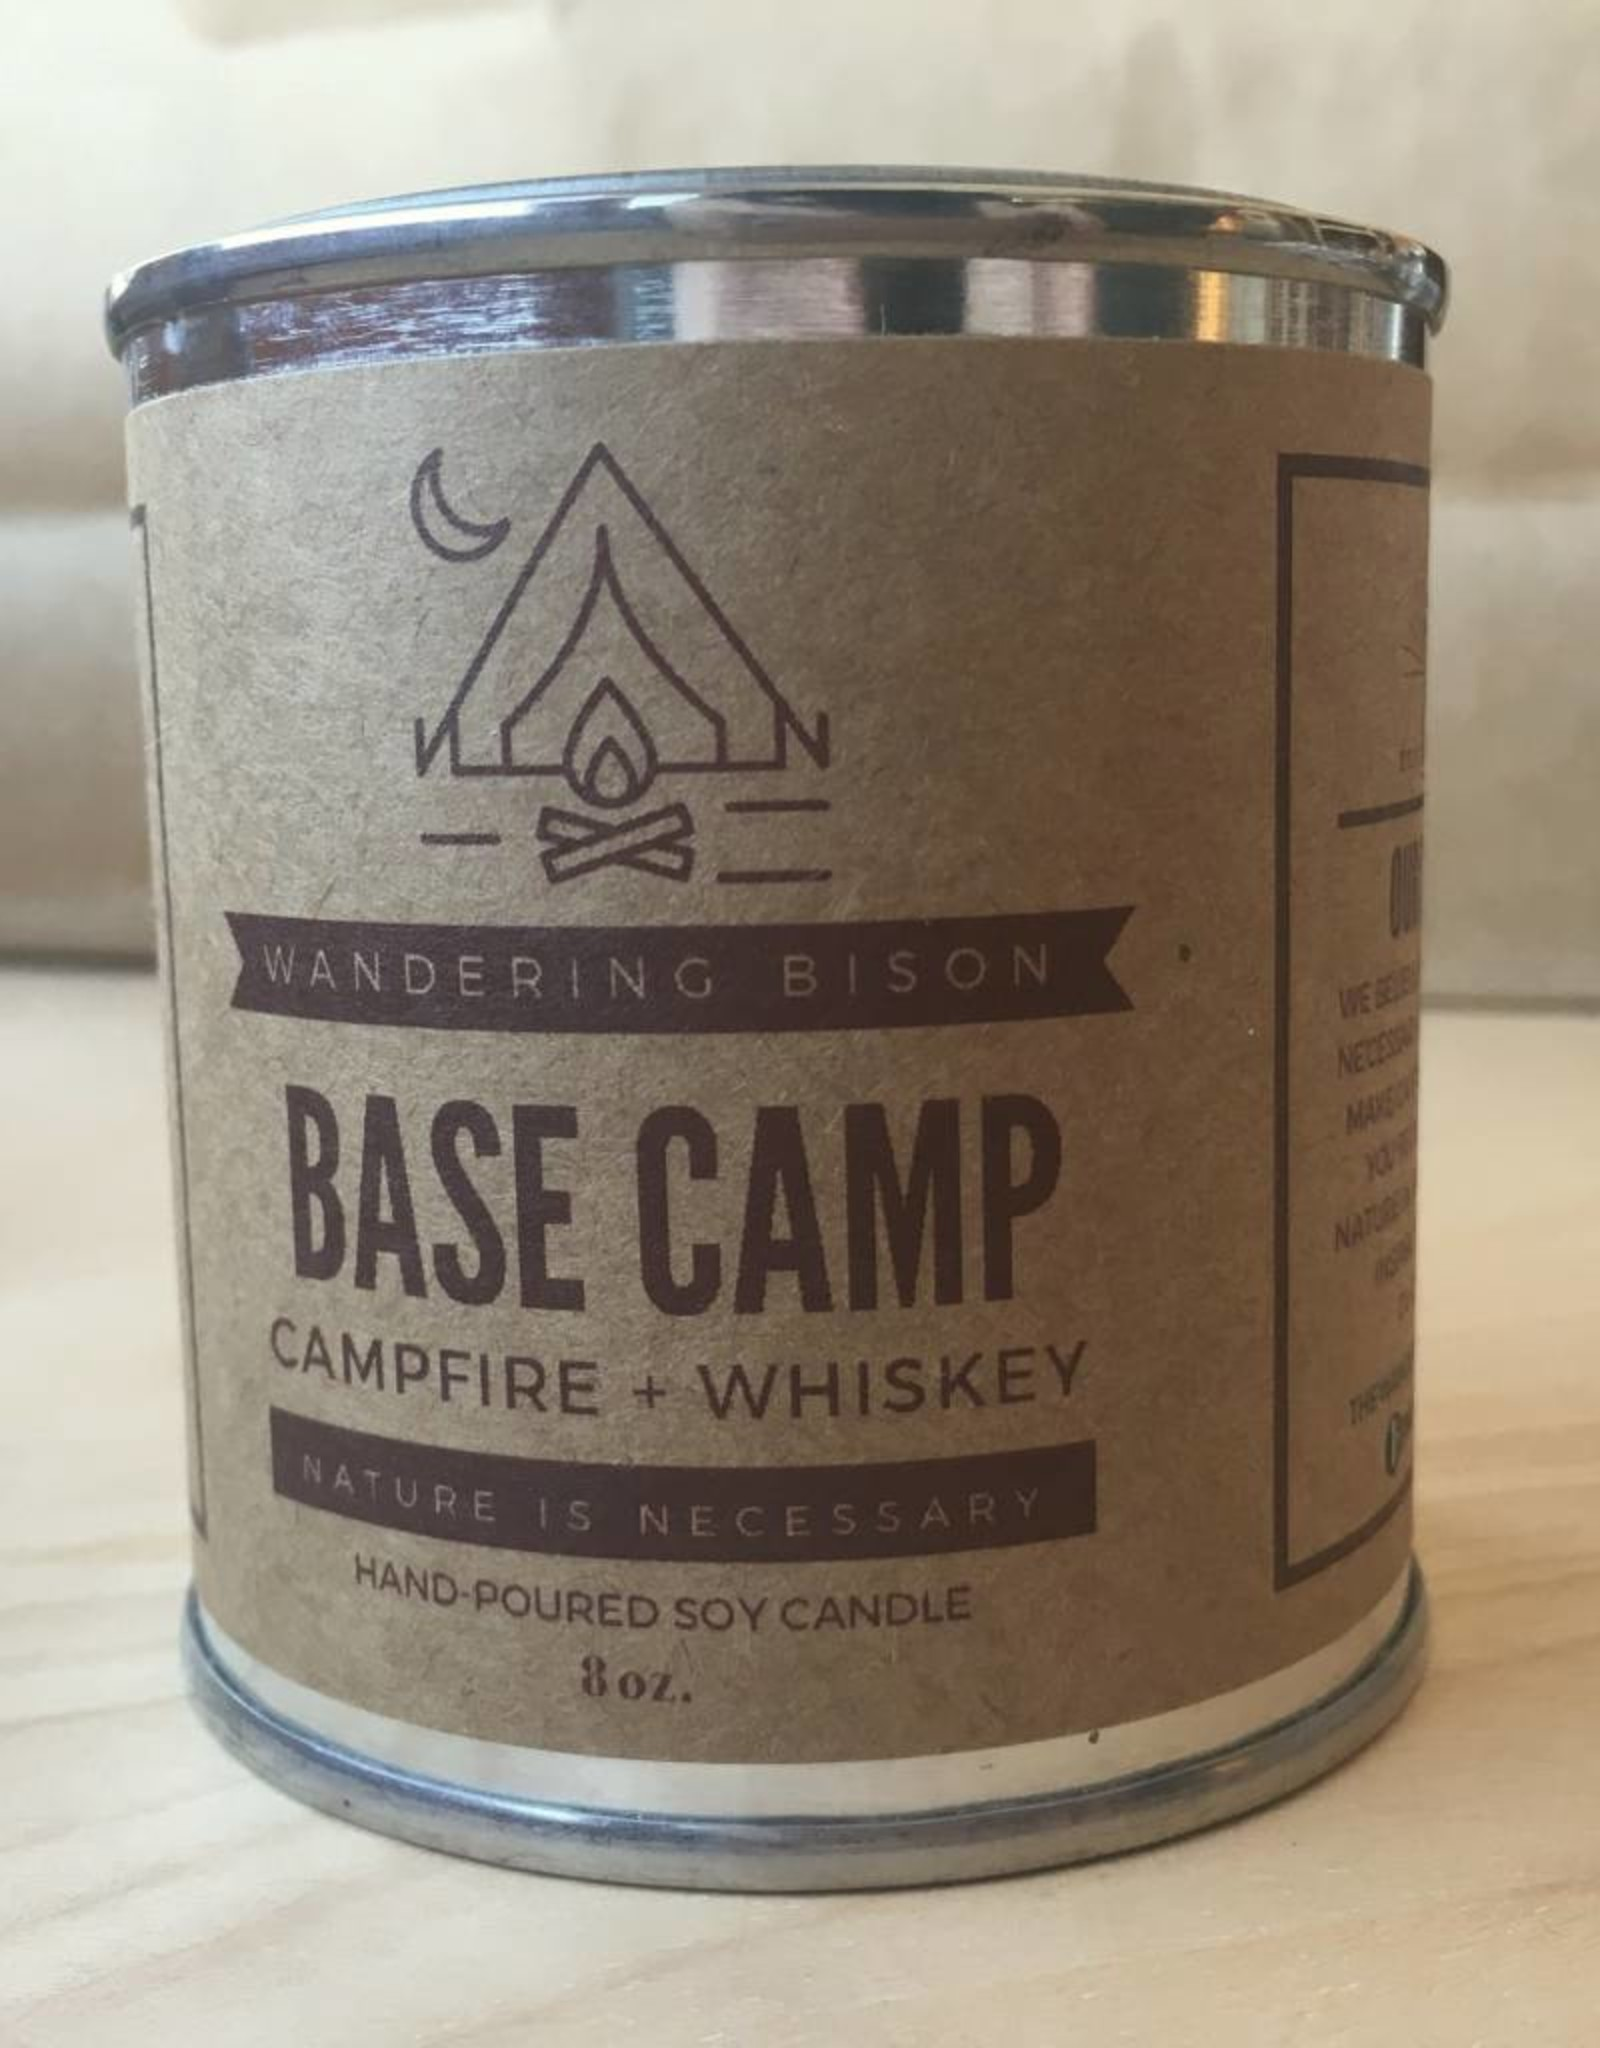 Wandering Bison Wax Co. Candle